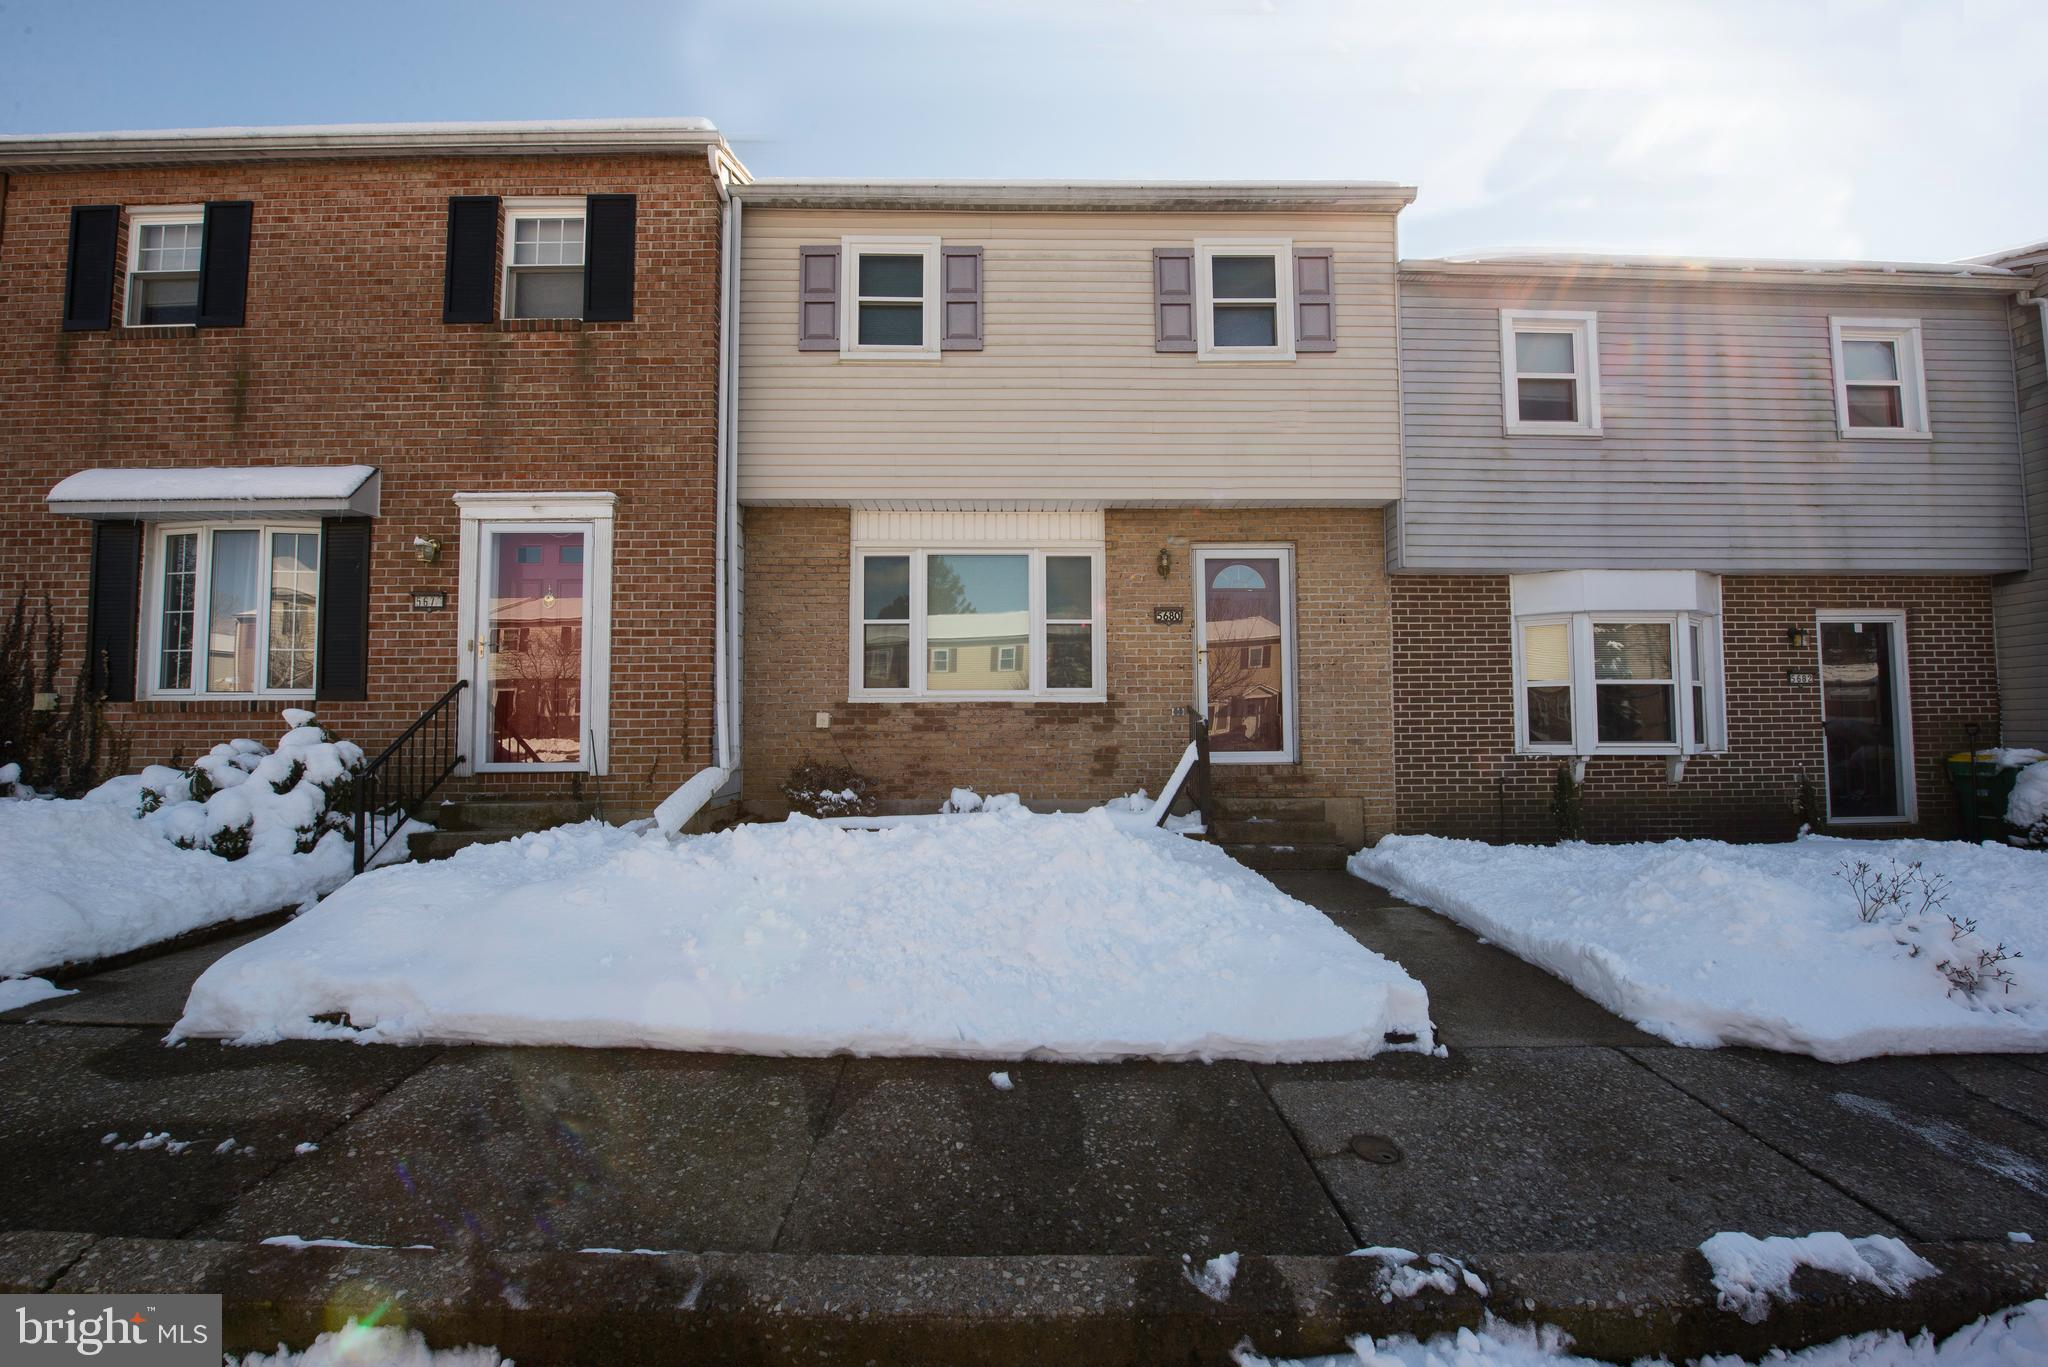 5680 GREENS DRIVE, ALLENTOWN, PA 18106